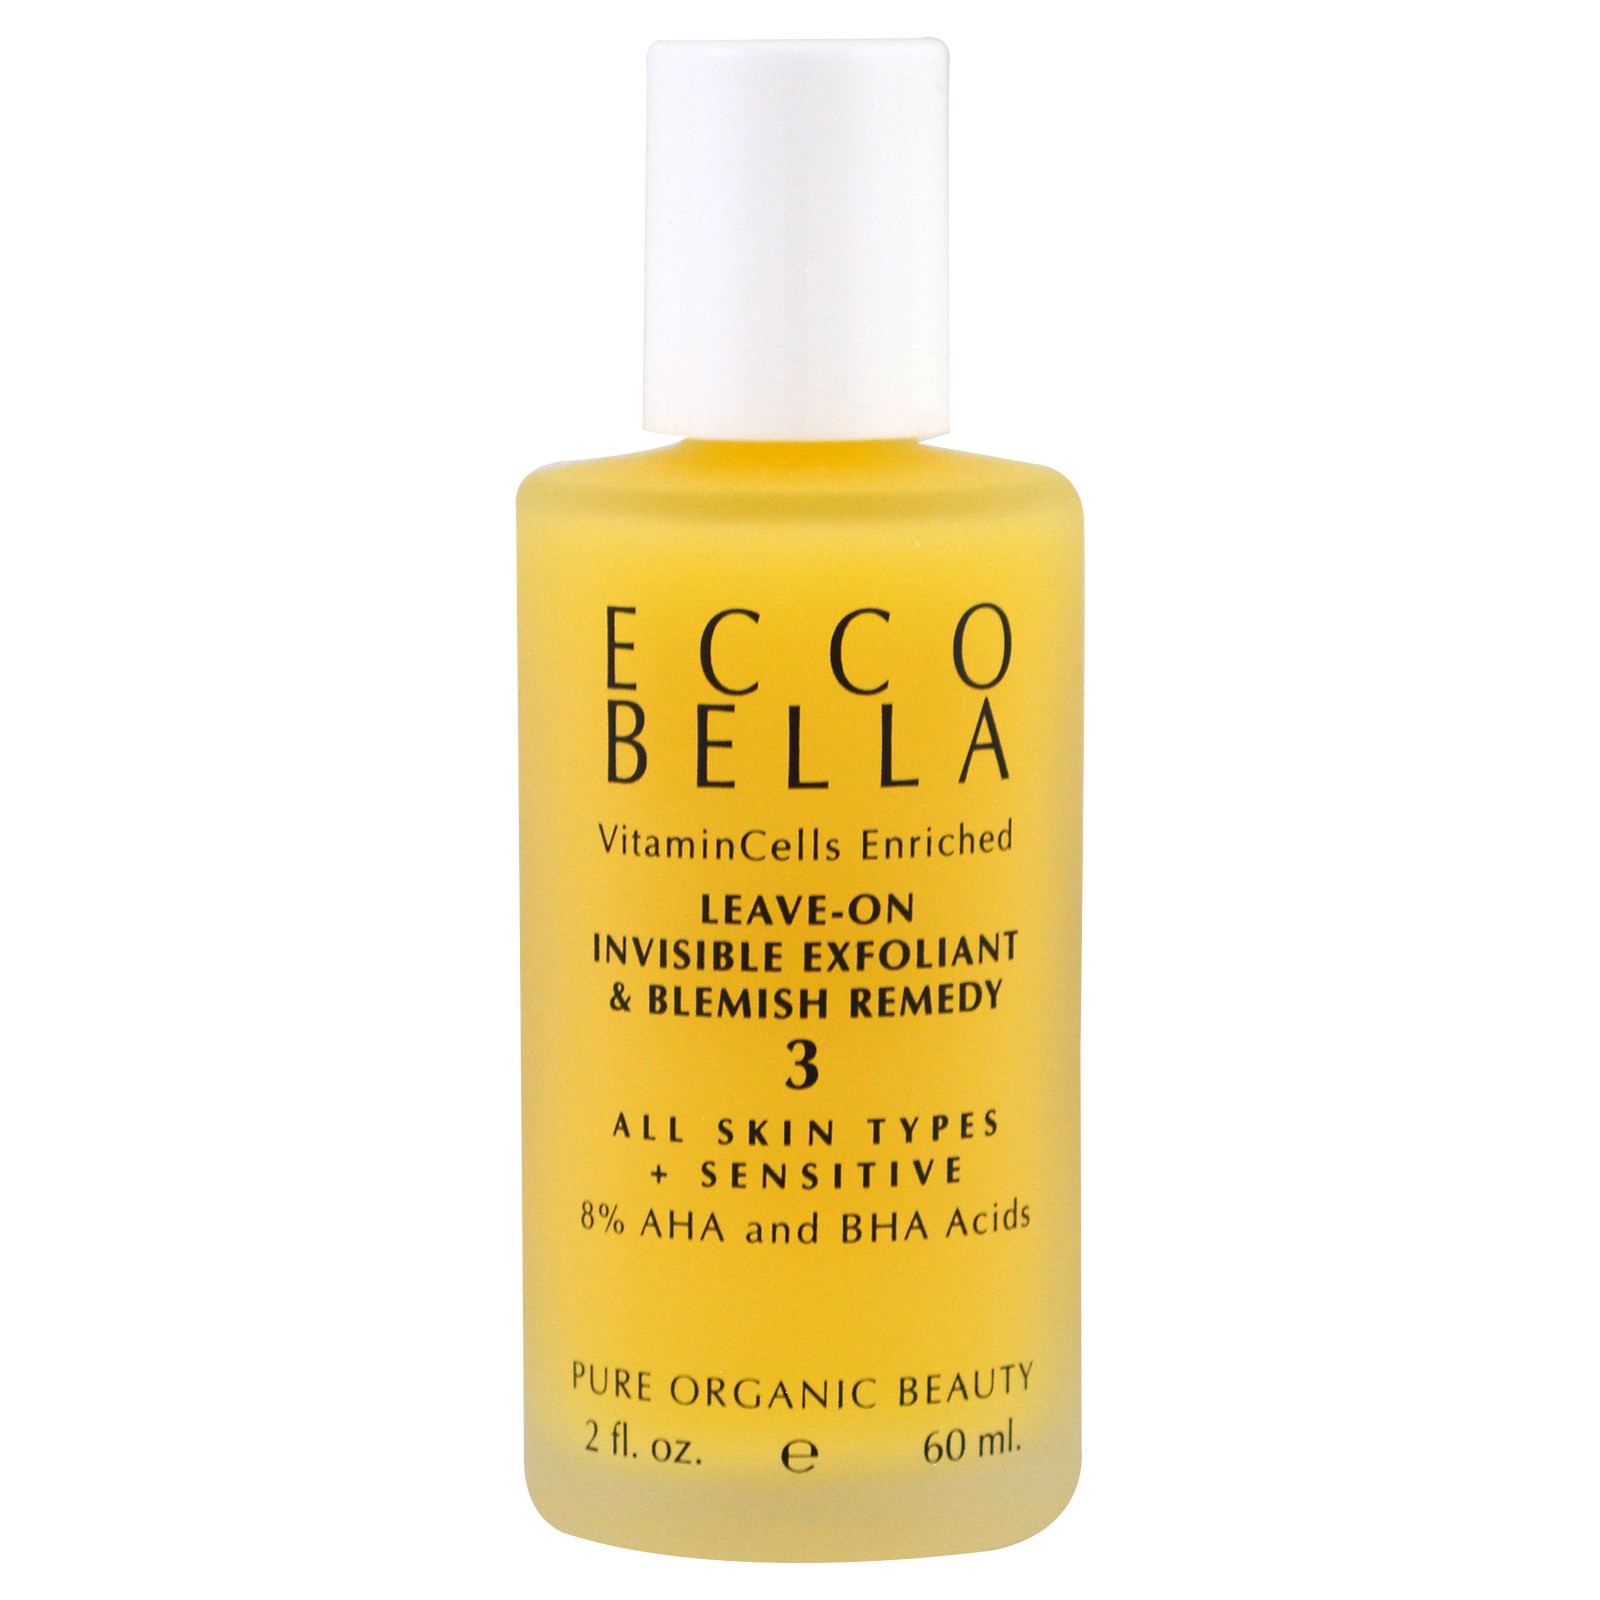 Ecco Bella Natural Leave-On Invisible Exfoliant and Blemish Remedy.